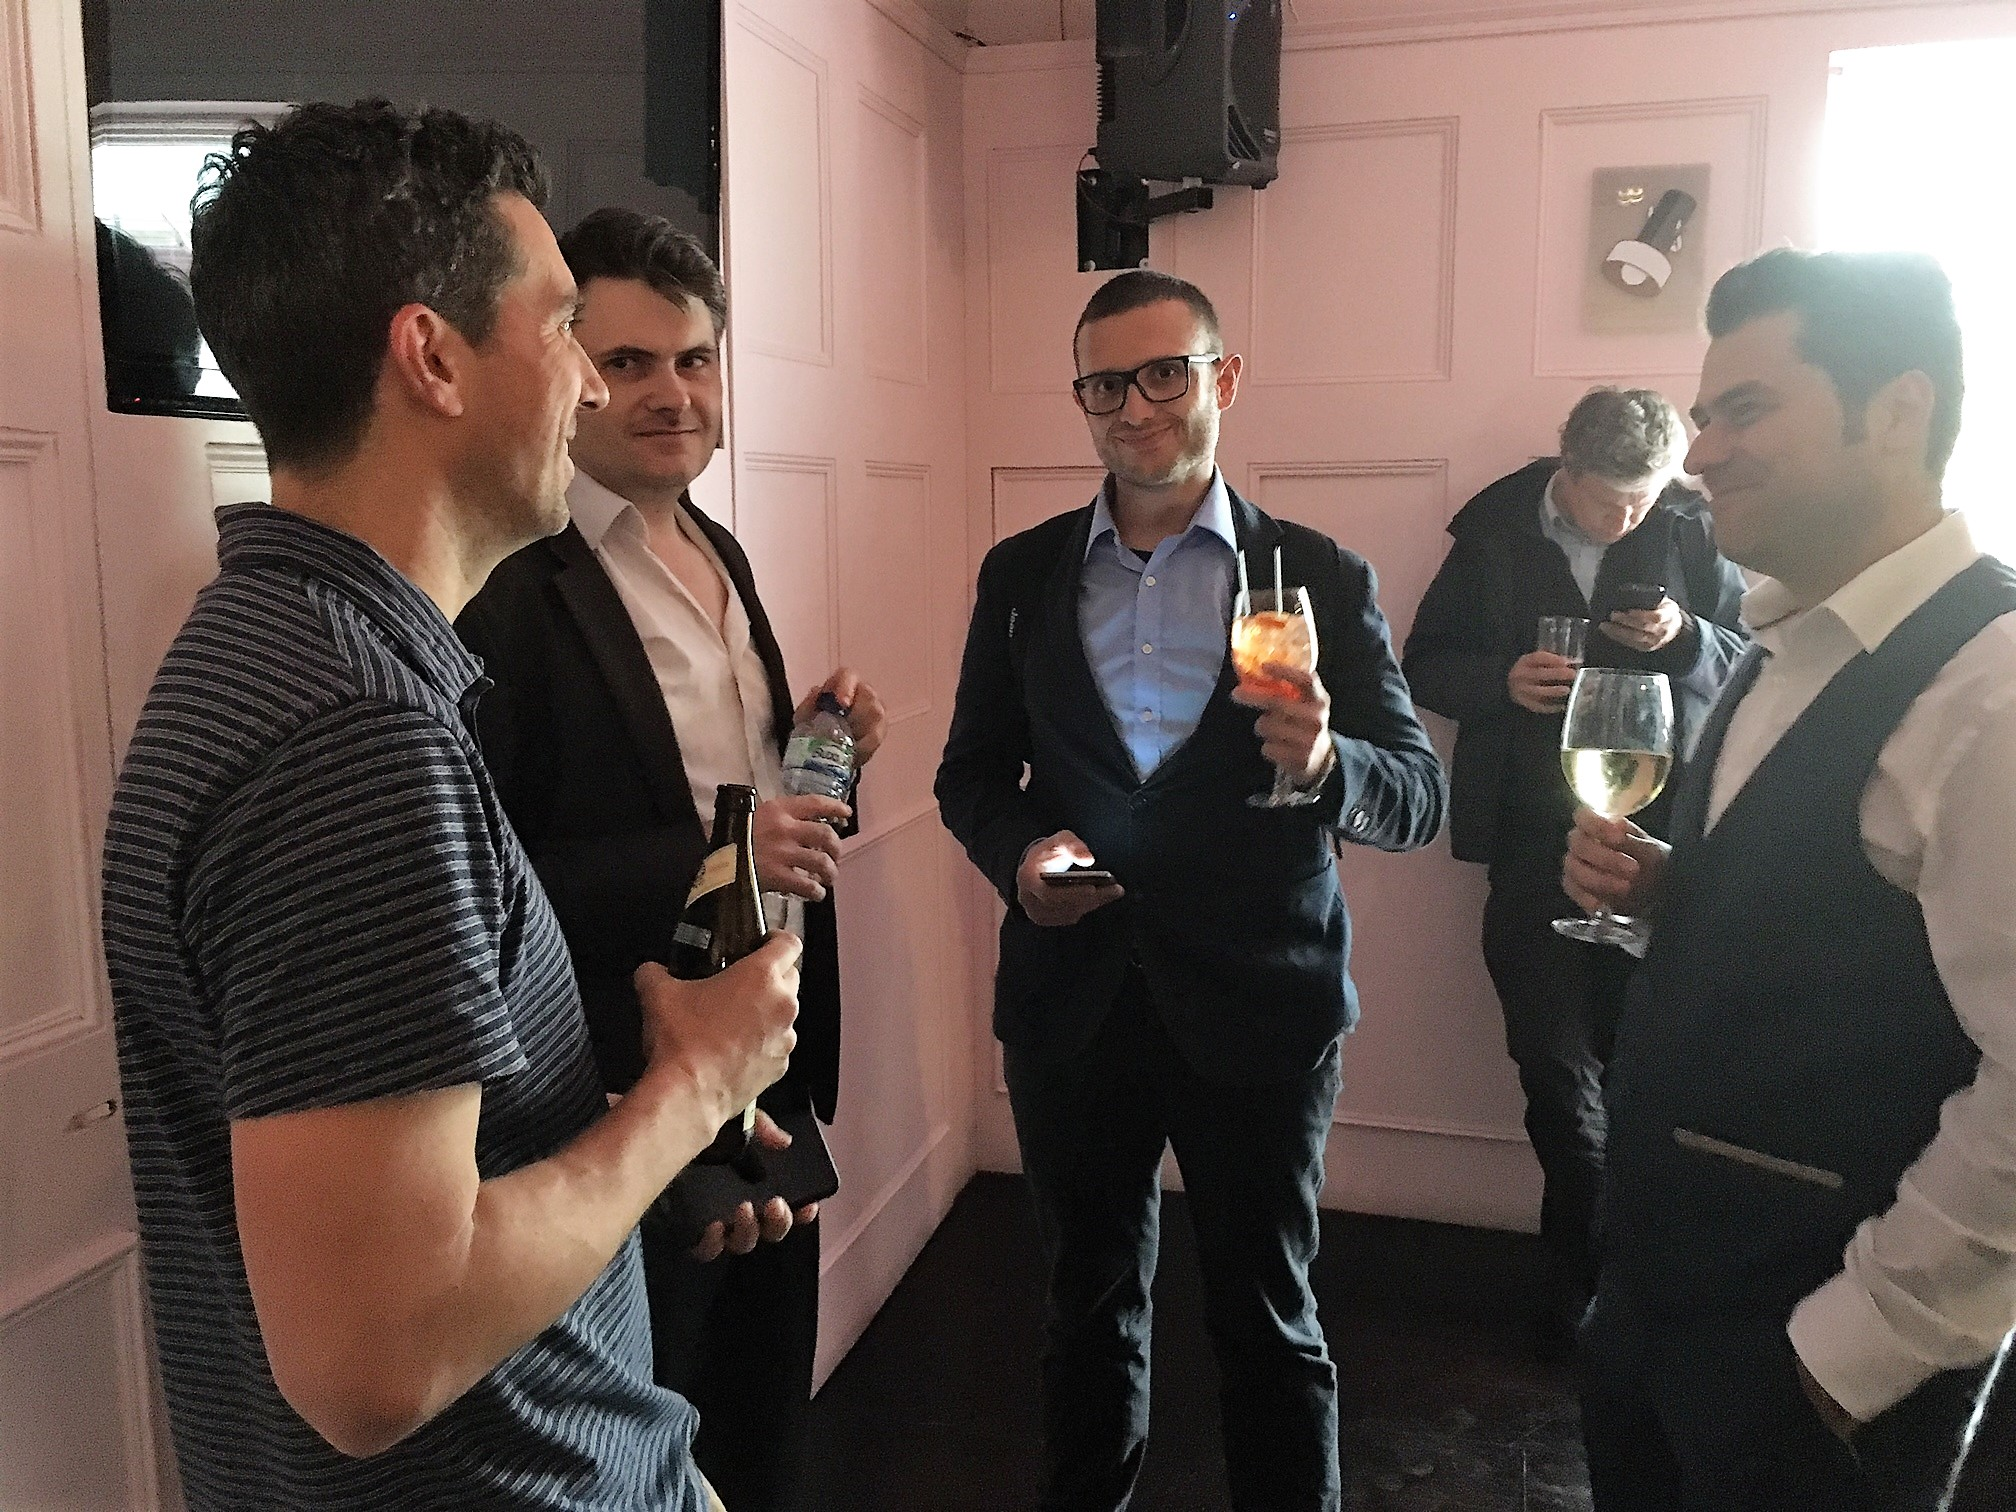 Wandsworth digitech networking